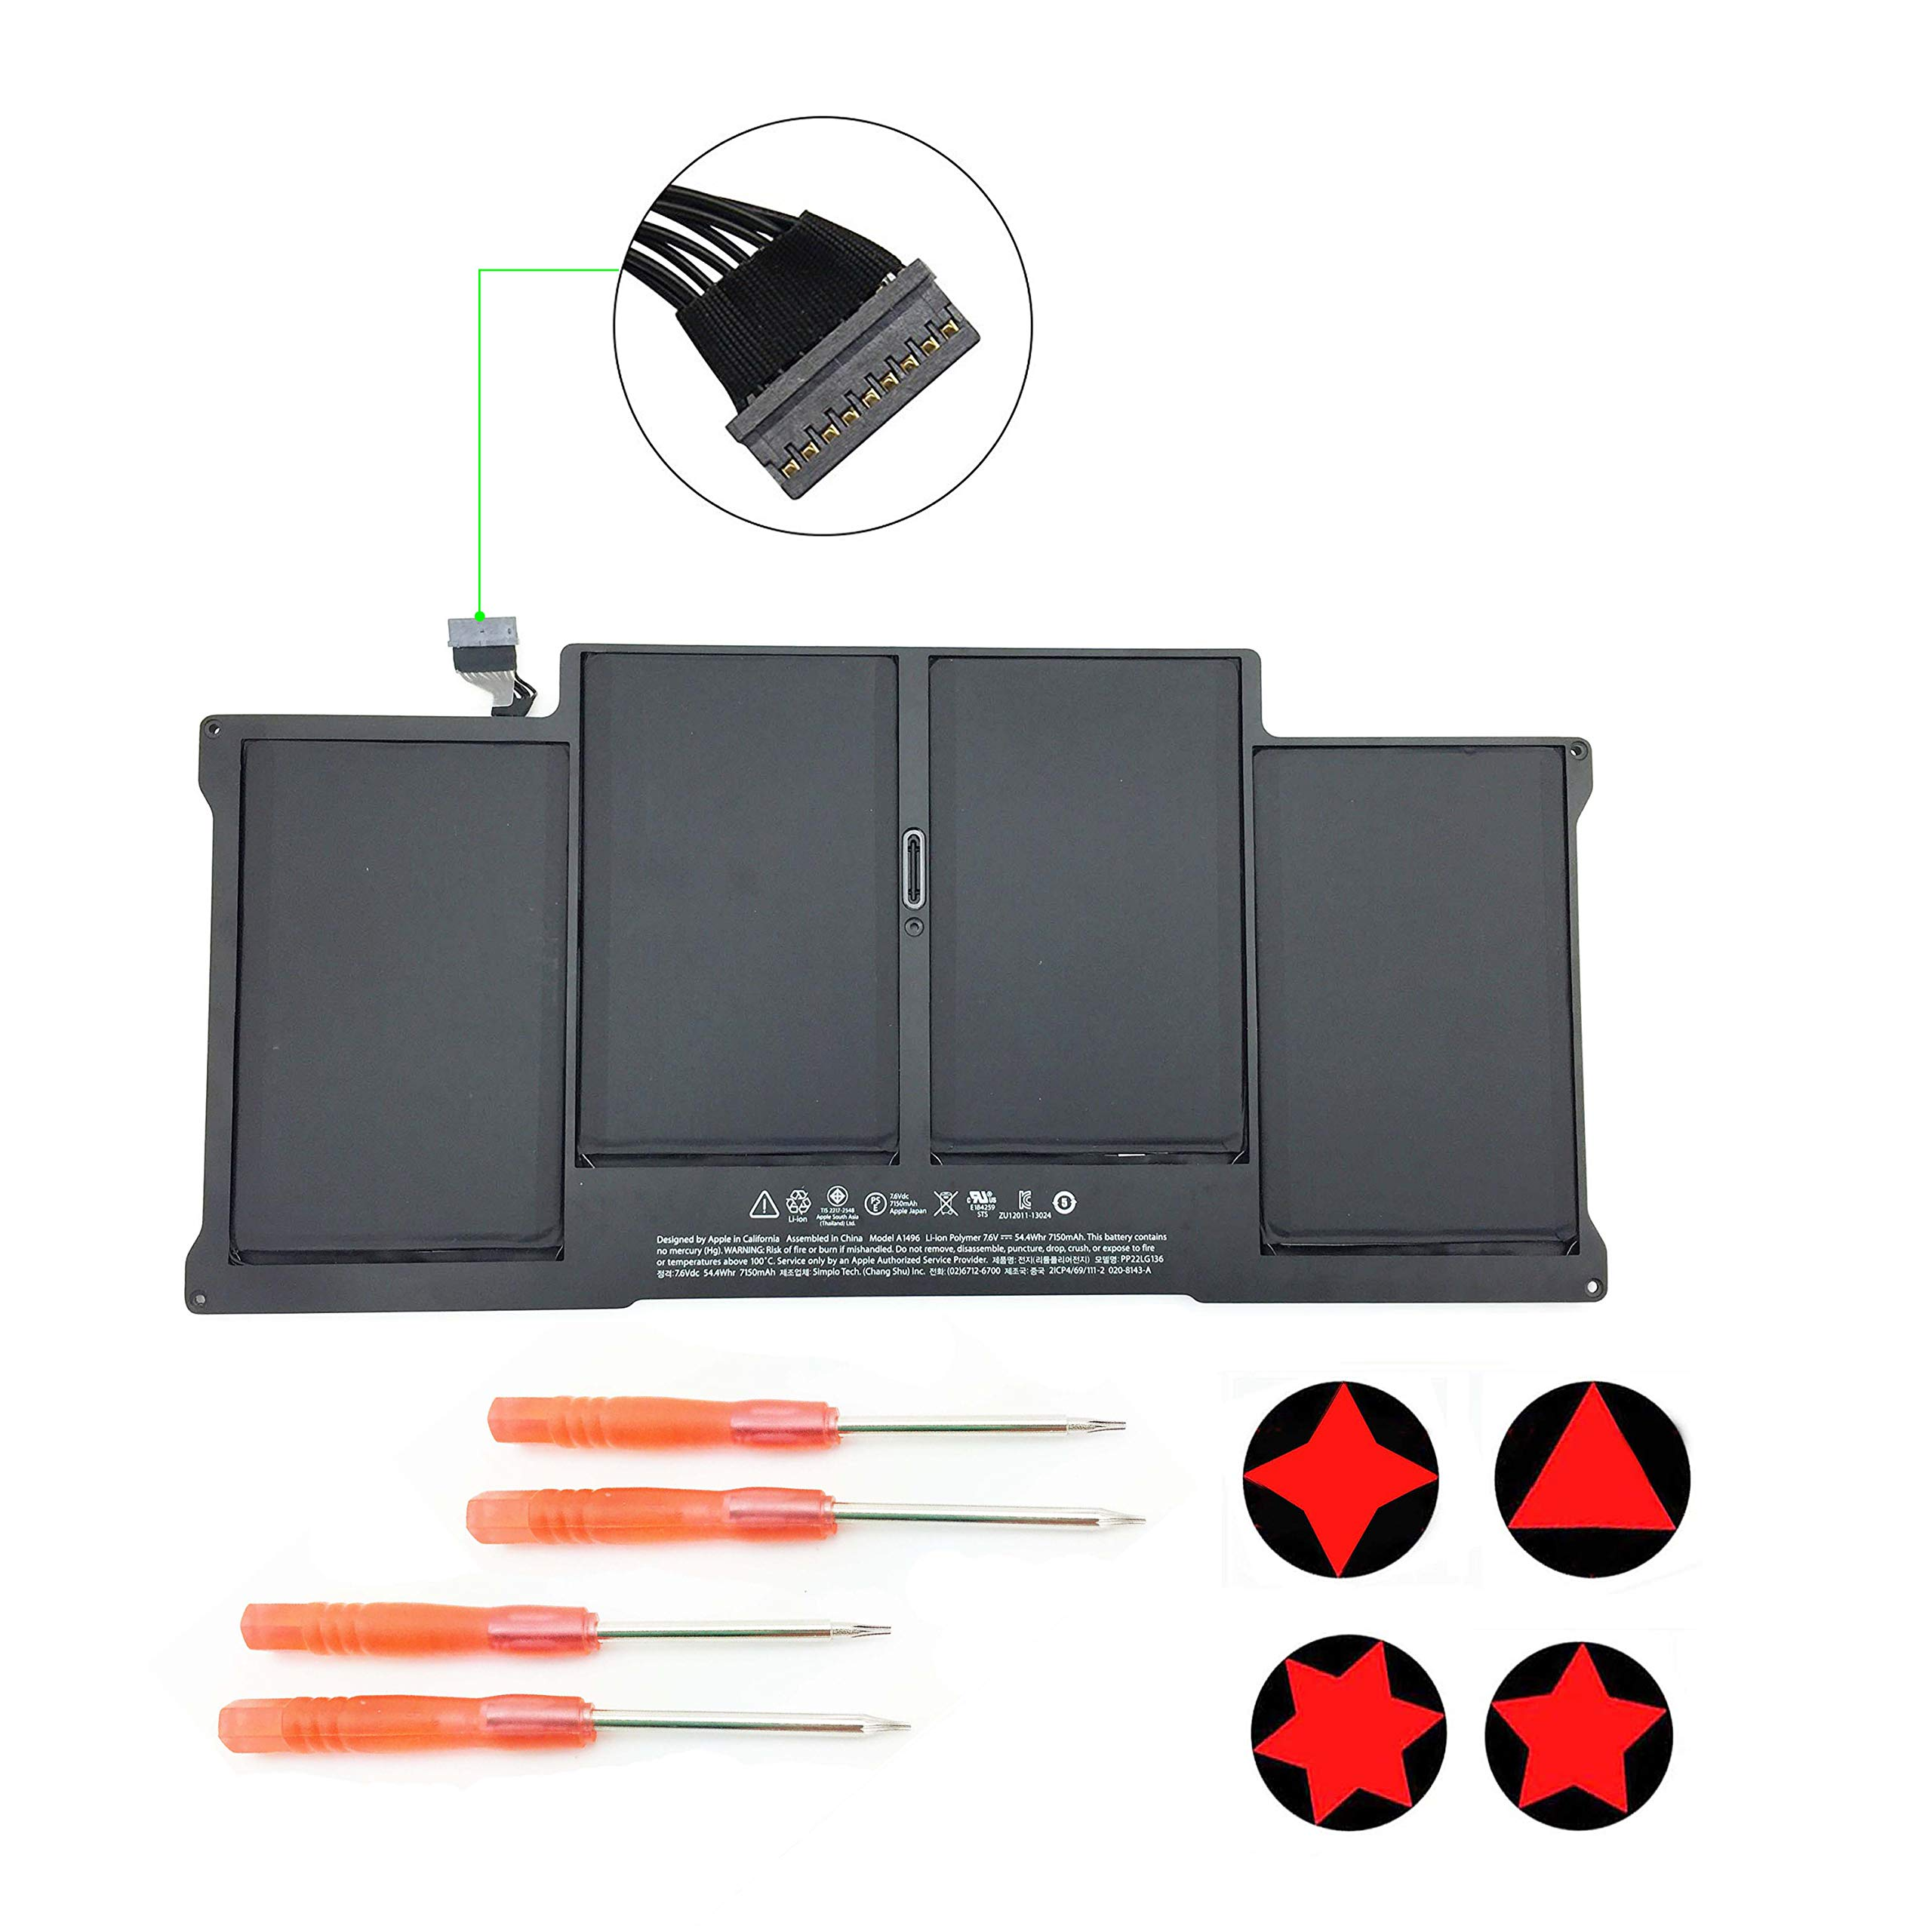 Bateria A1405 A1369 Para Apple Macbook Air 13 Inch A1466 Mid 2012 Mid 2013 Early 2014 Early 2015 A1369 Late 2010 Mid 201